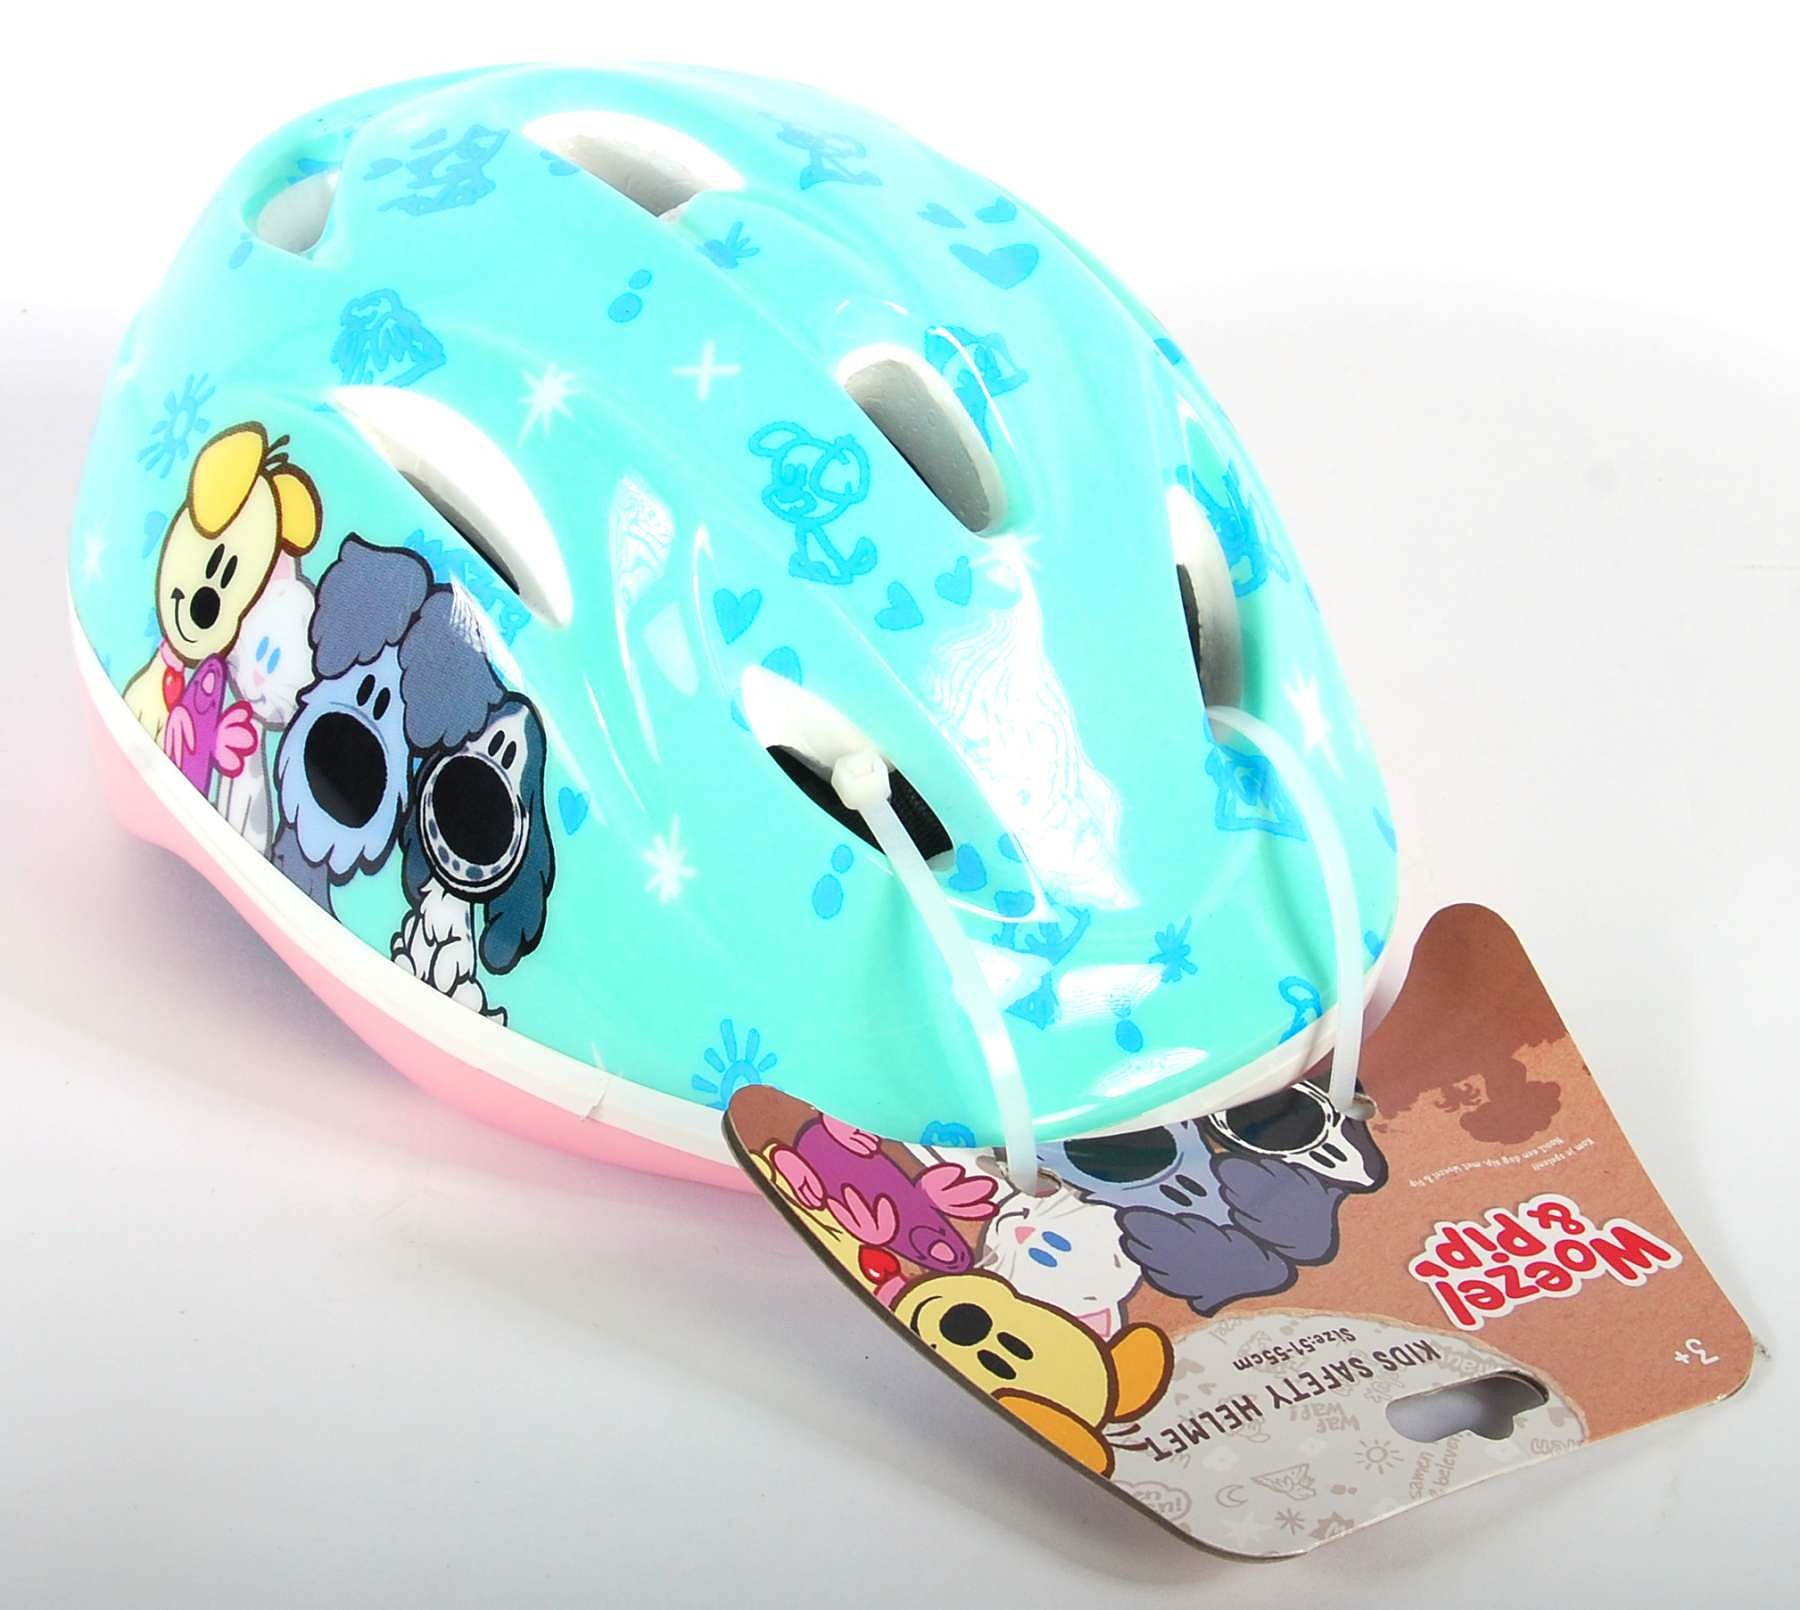 Volare Woezel & Pip fiets -skatehelm turquoise maat 51 55 cm